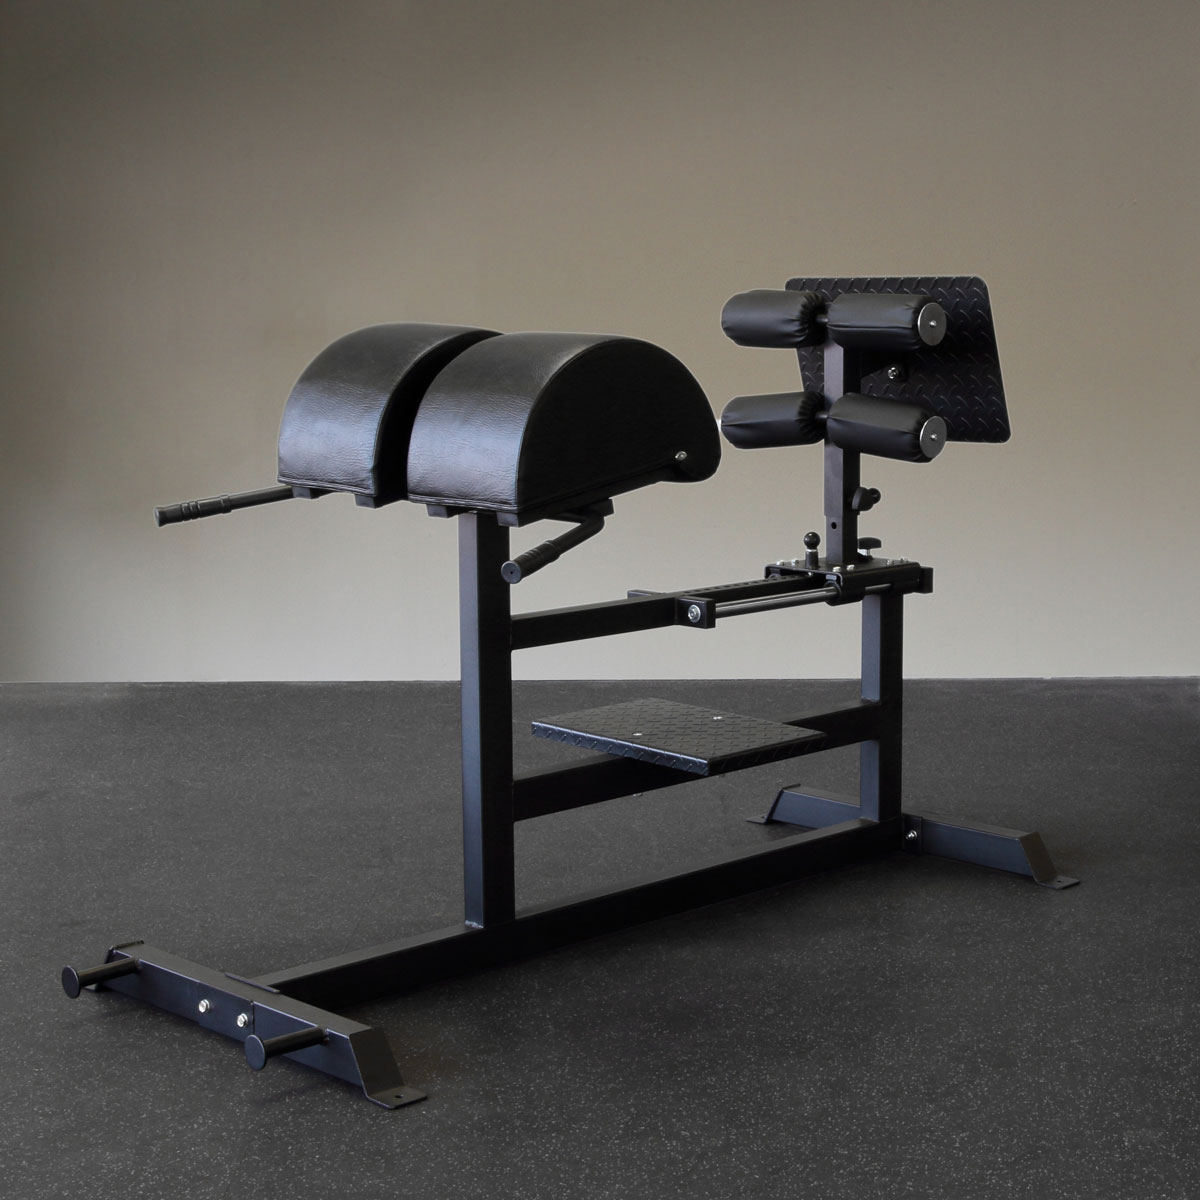 Pro Bearing Glute Hamstring Station GHD - Out of Stock